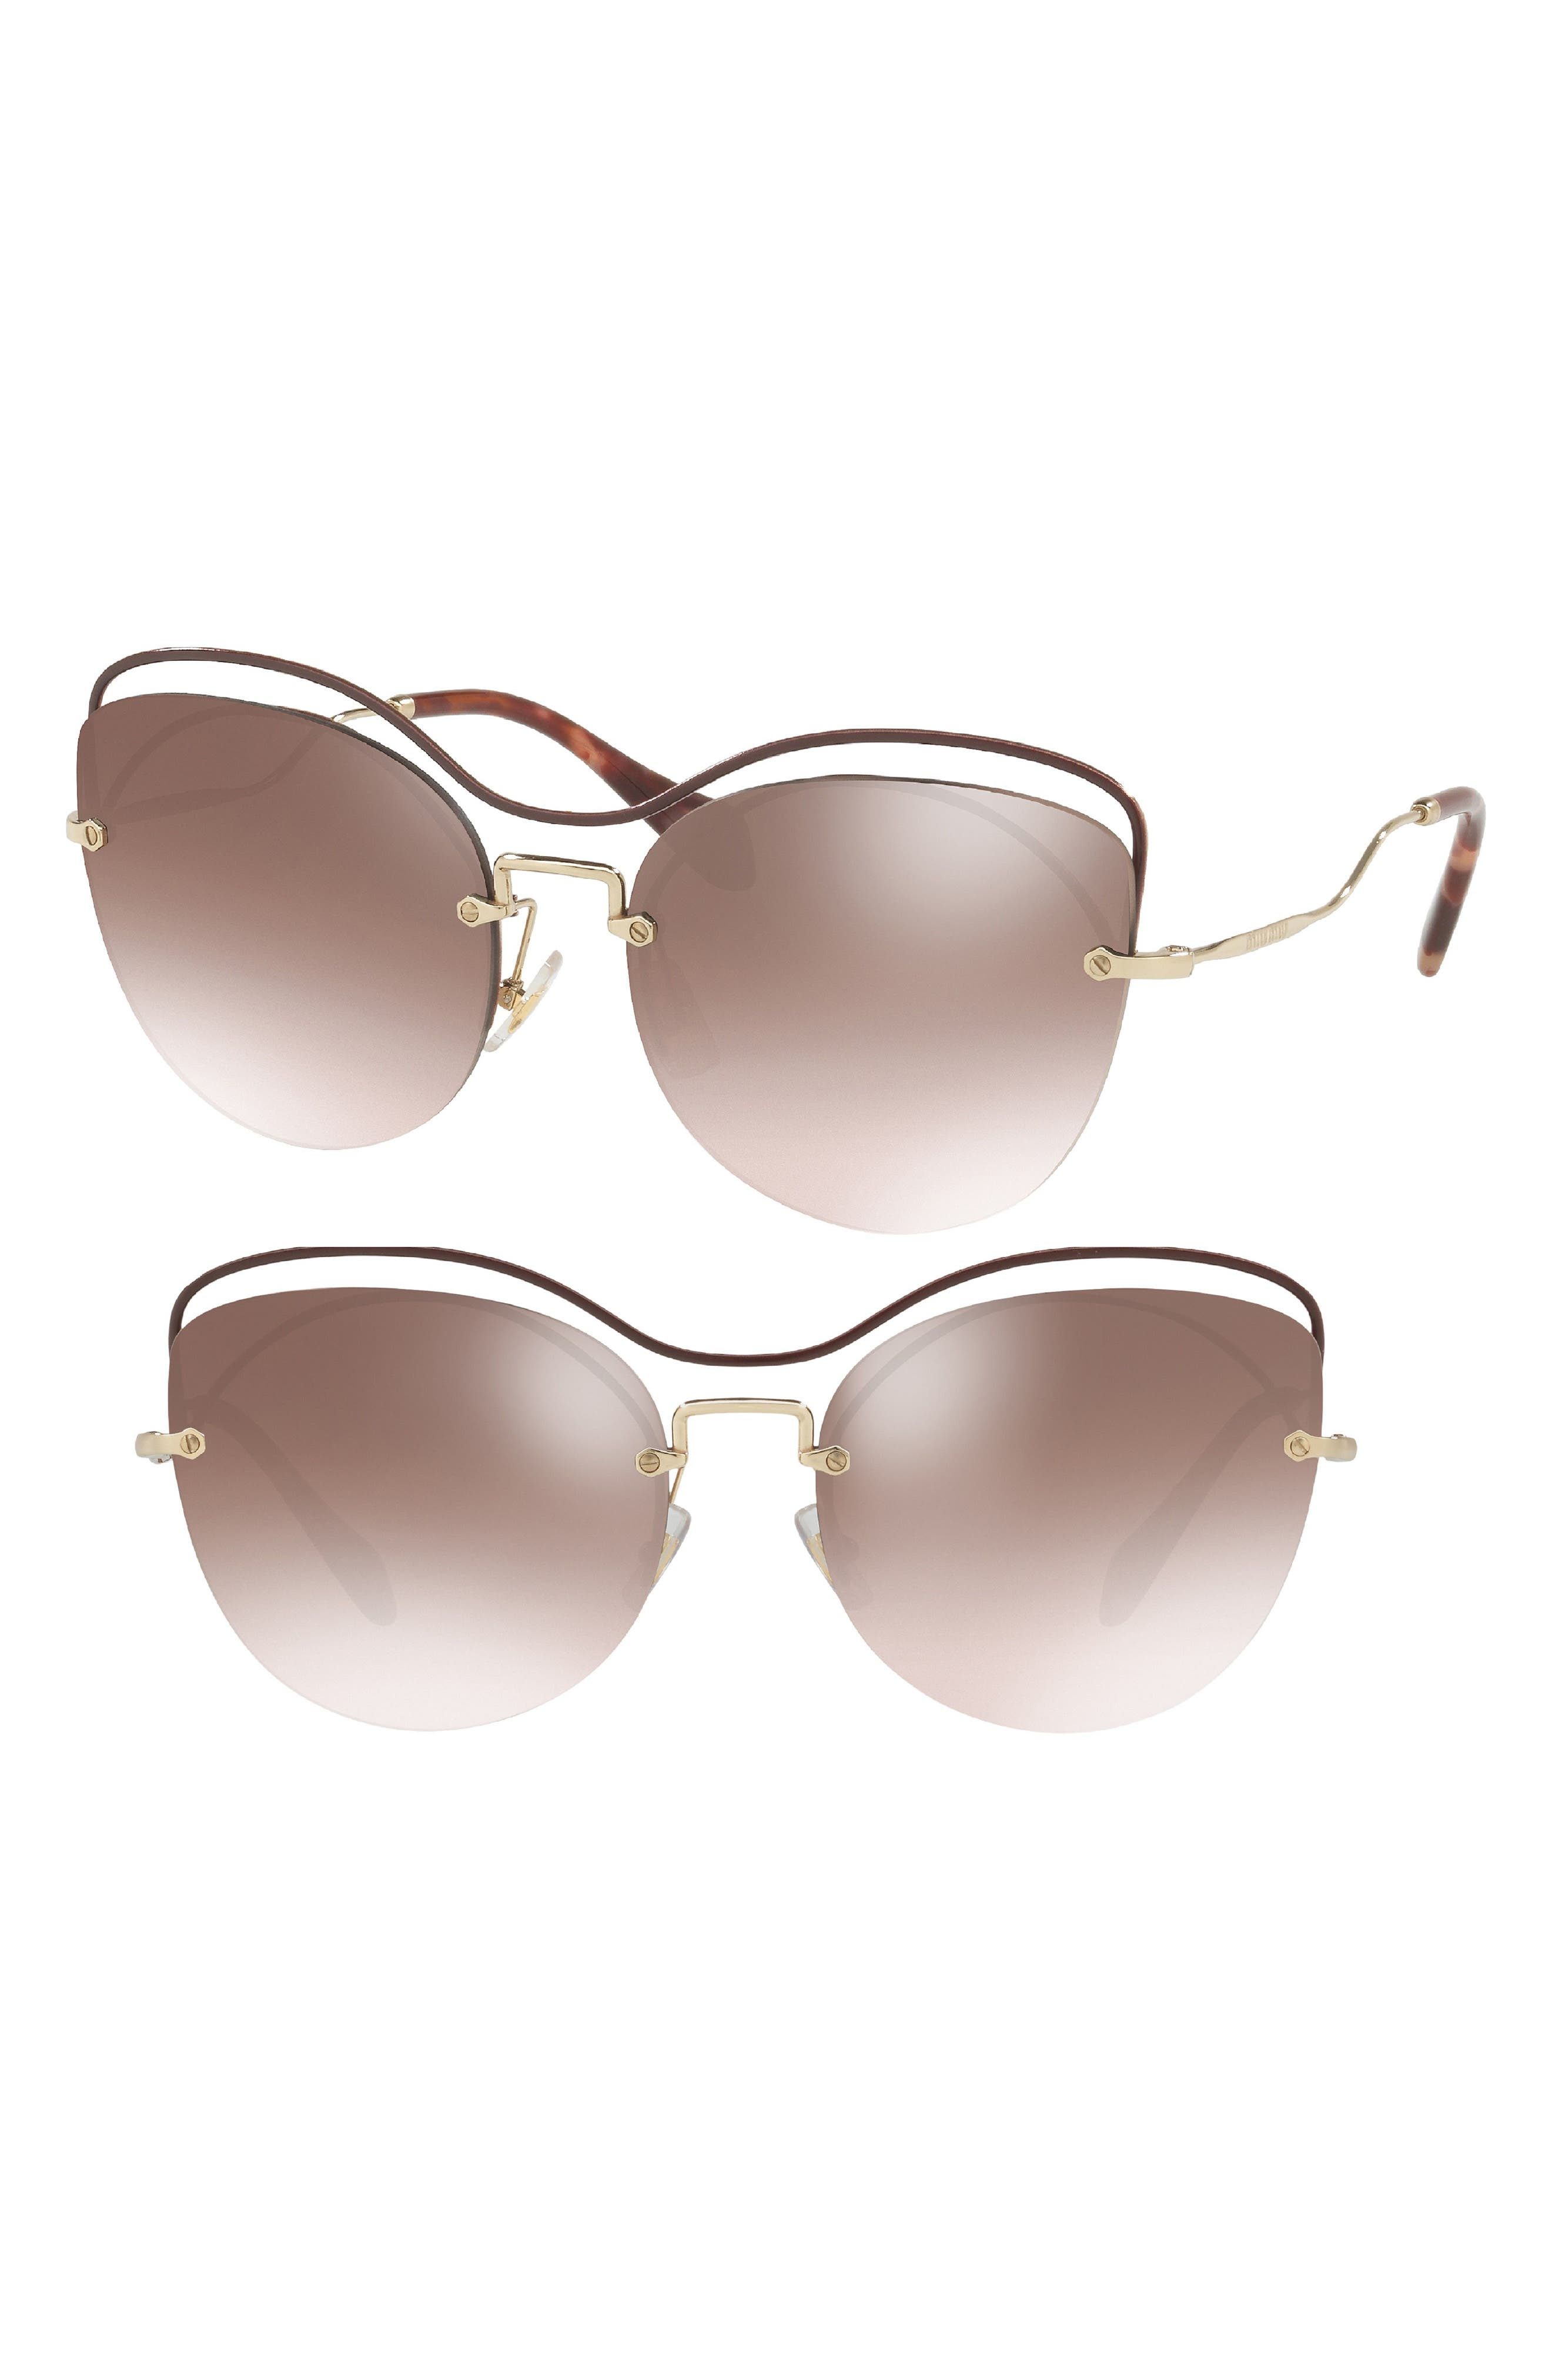 60mm Mirrored Cat Eye Sunglasses,                         Main,                         color, BROWN